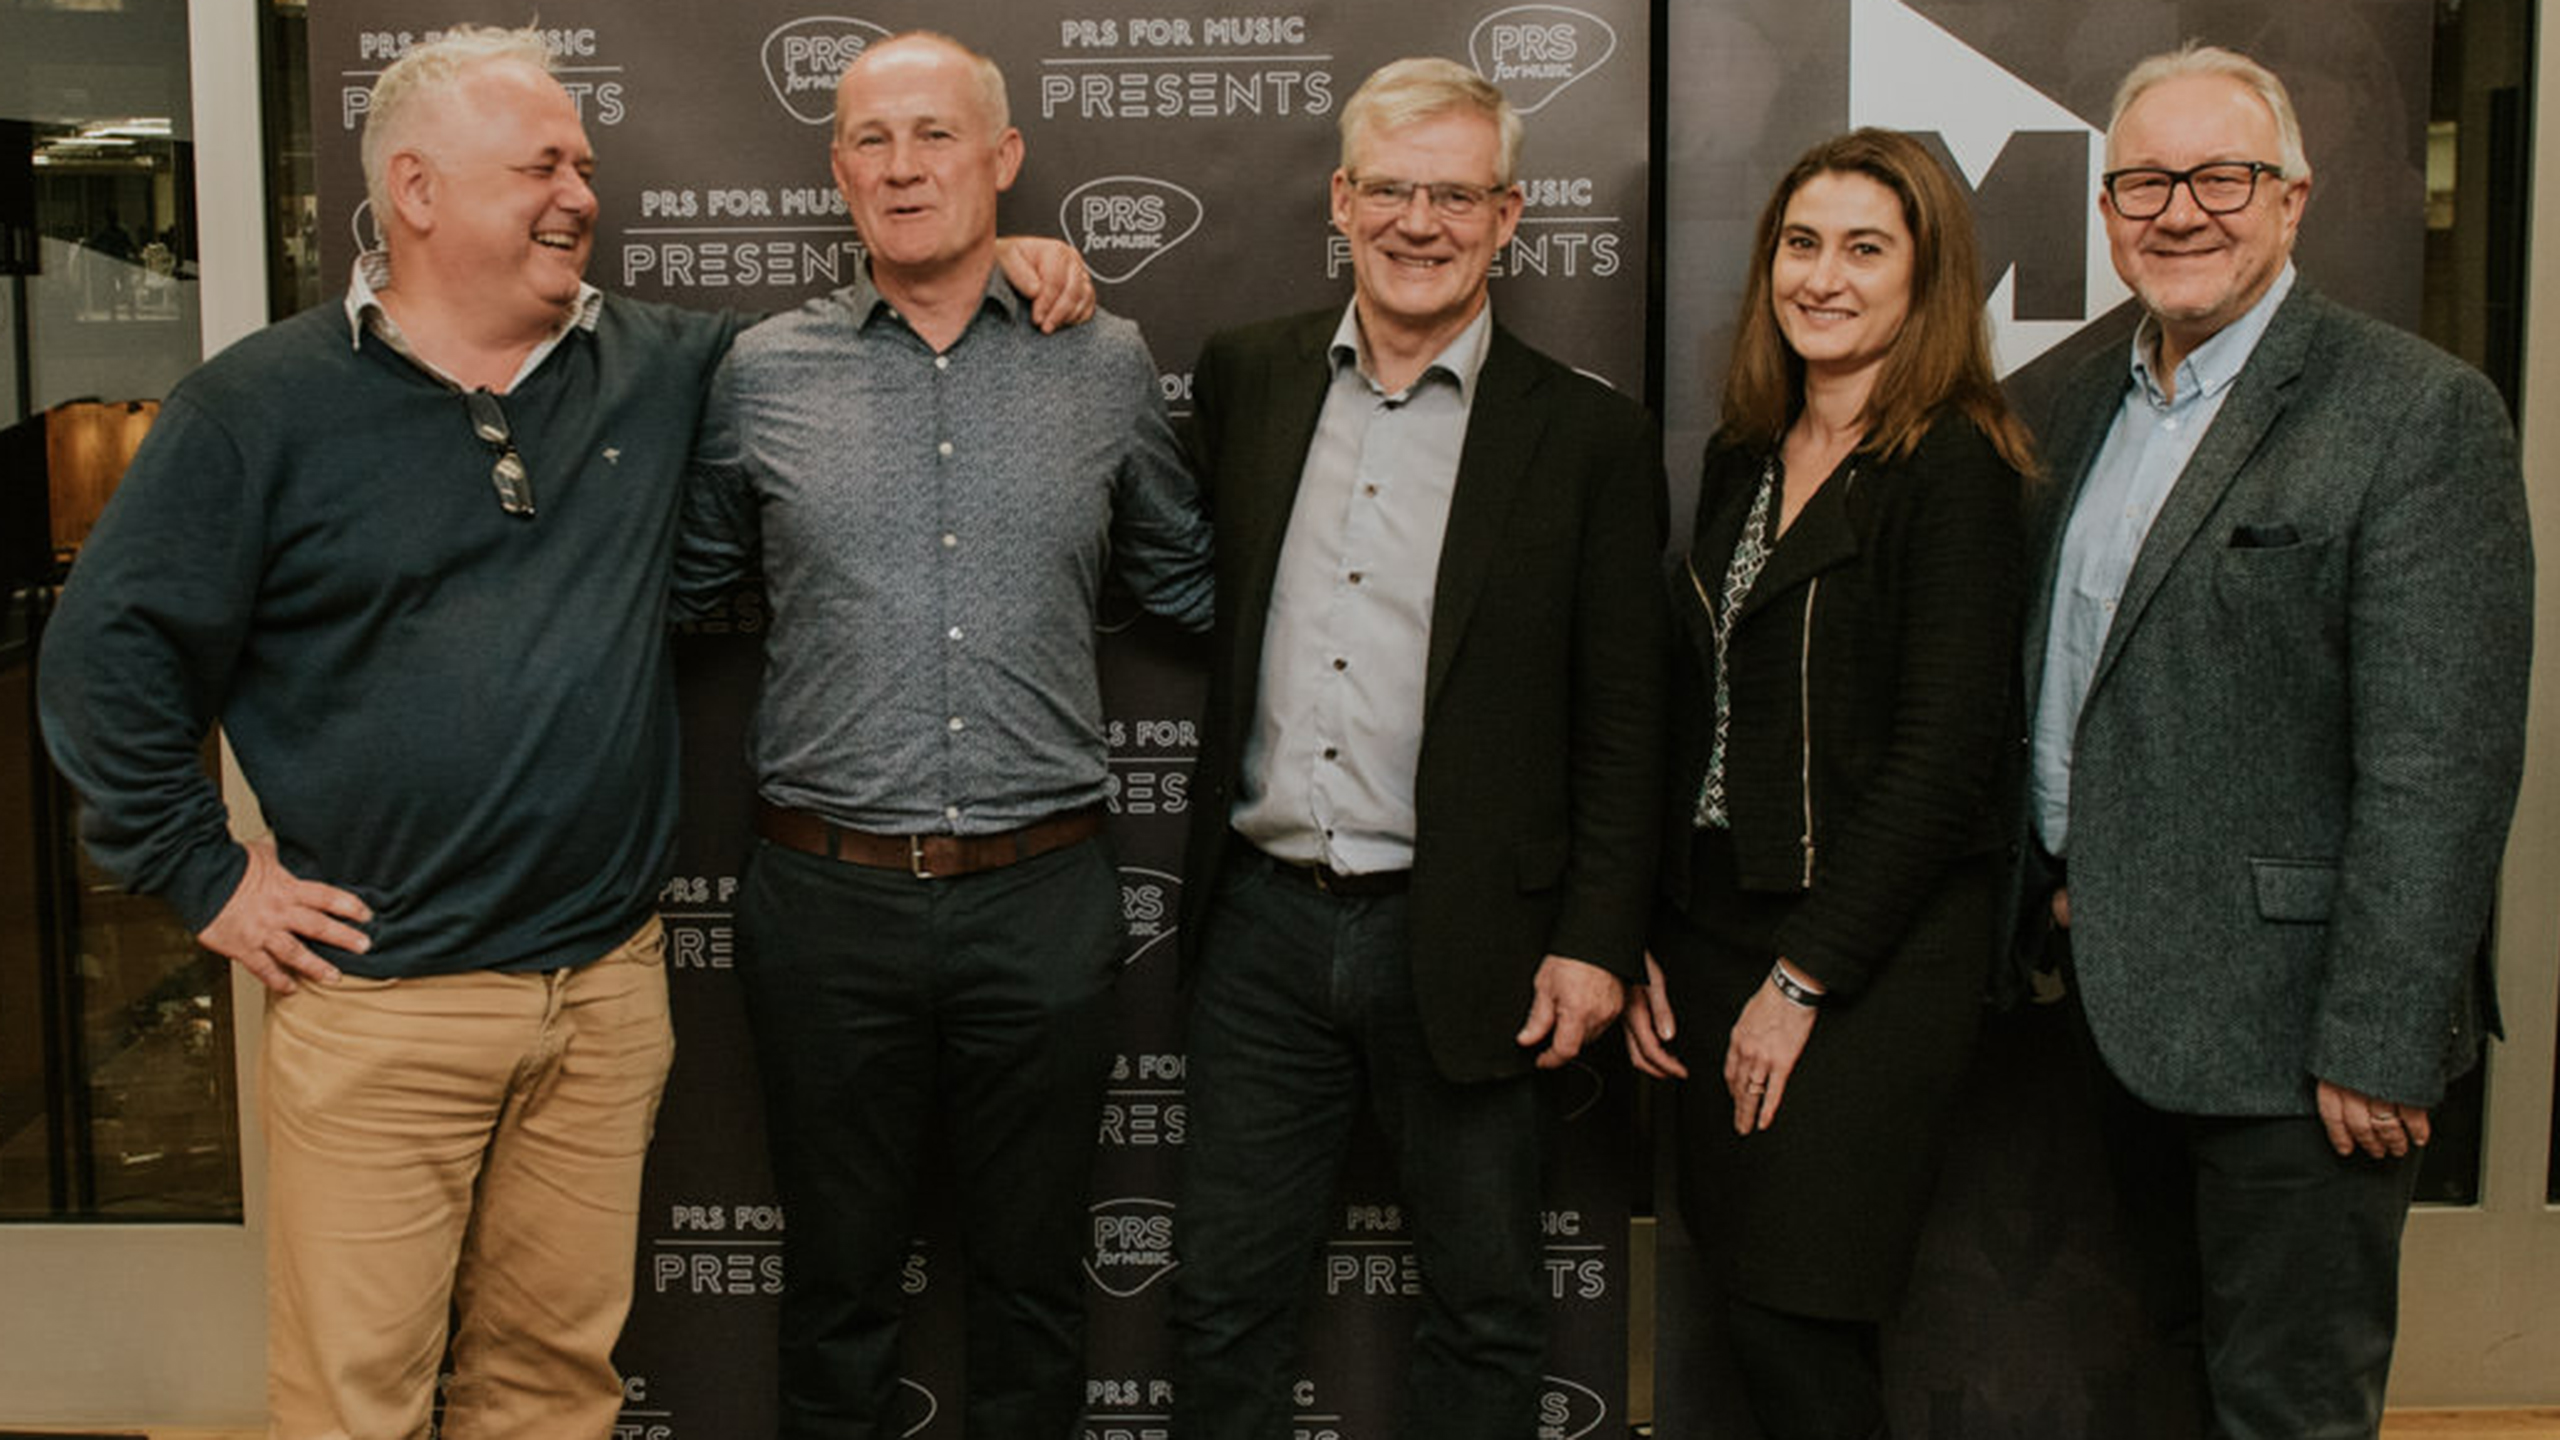 Robert Ashcroft and Nigel Elderton with Victor Finn (IMRO), Caroline Champarnaud (SACEM) and Christophe Depreter (SABAM) at PRS for Music Presents